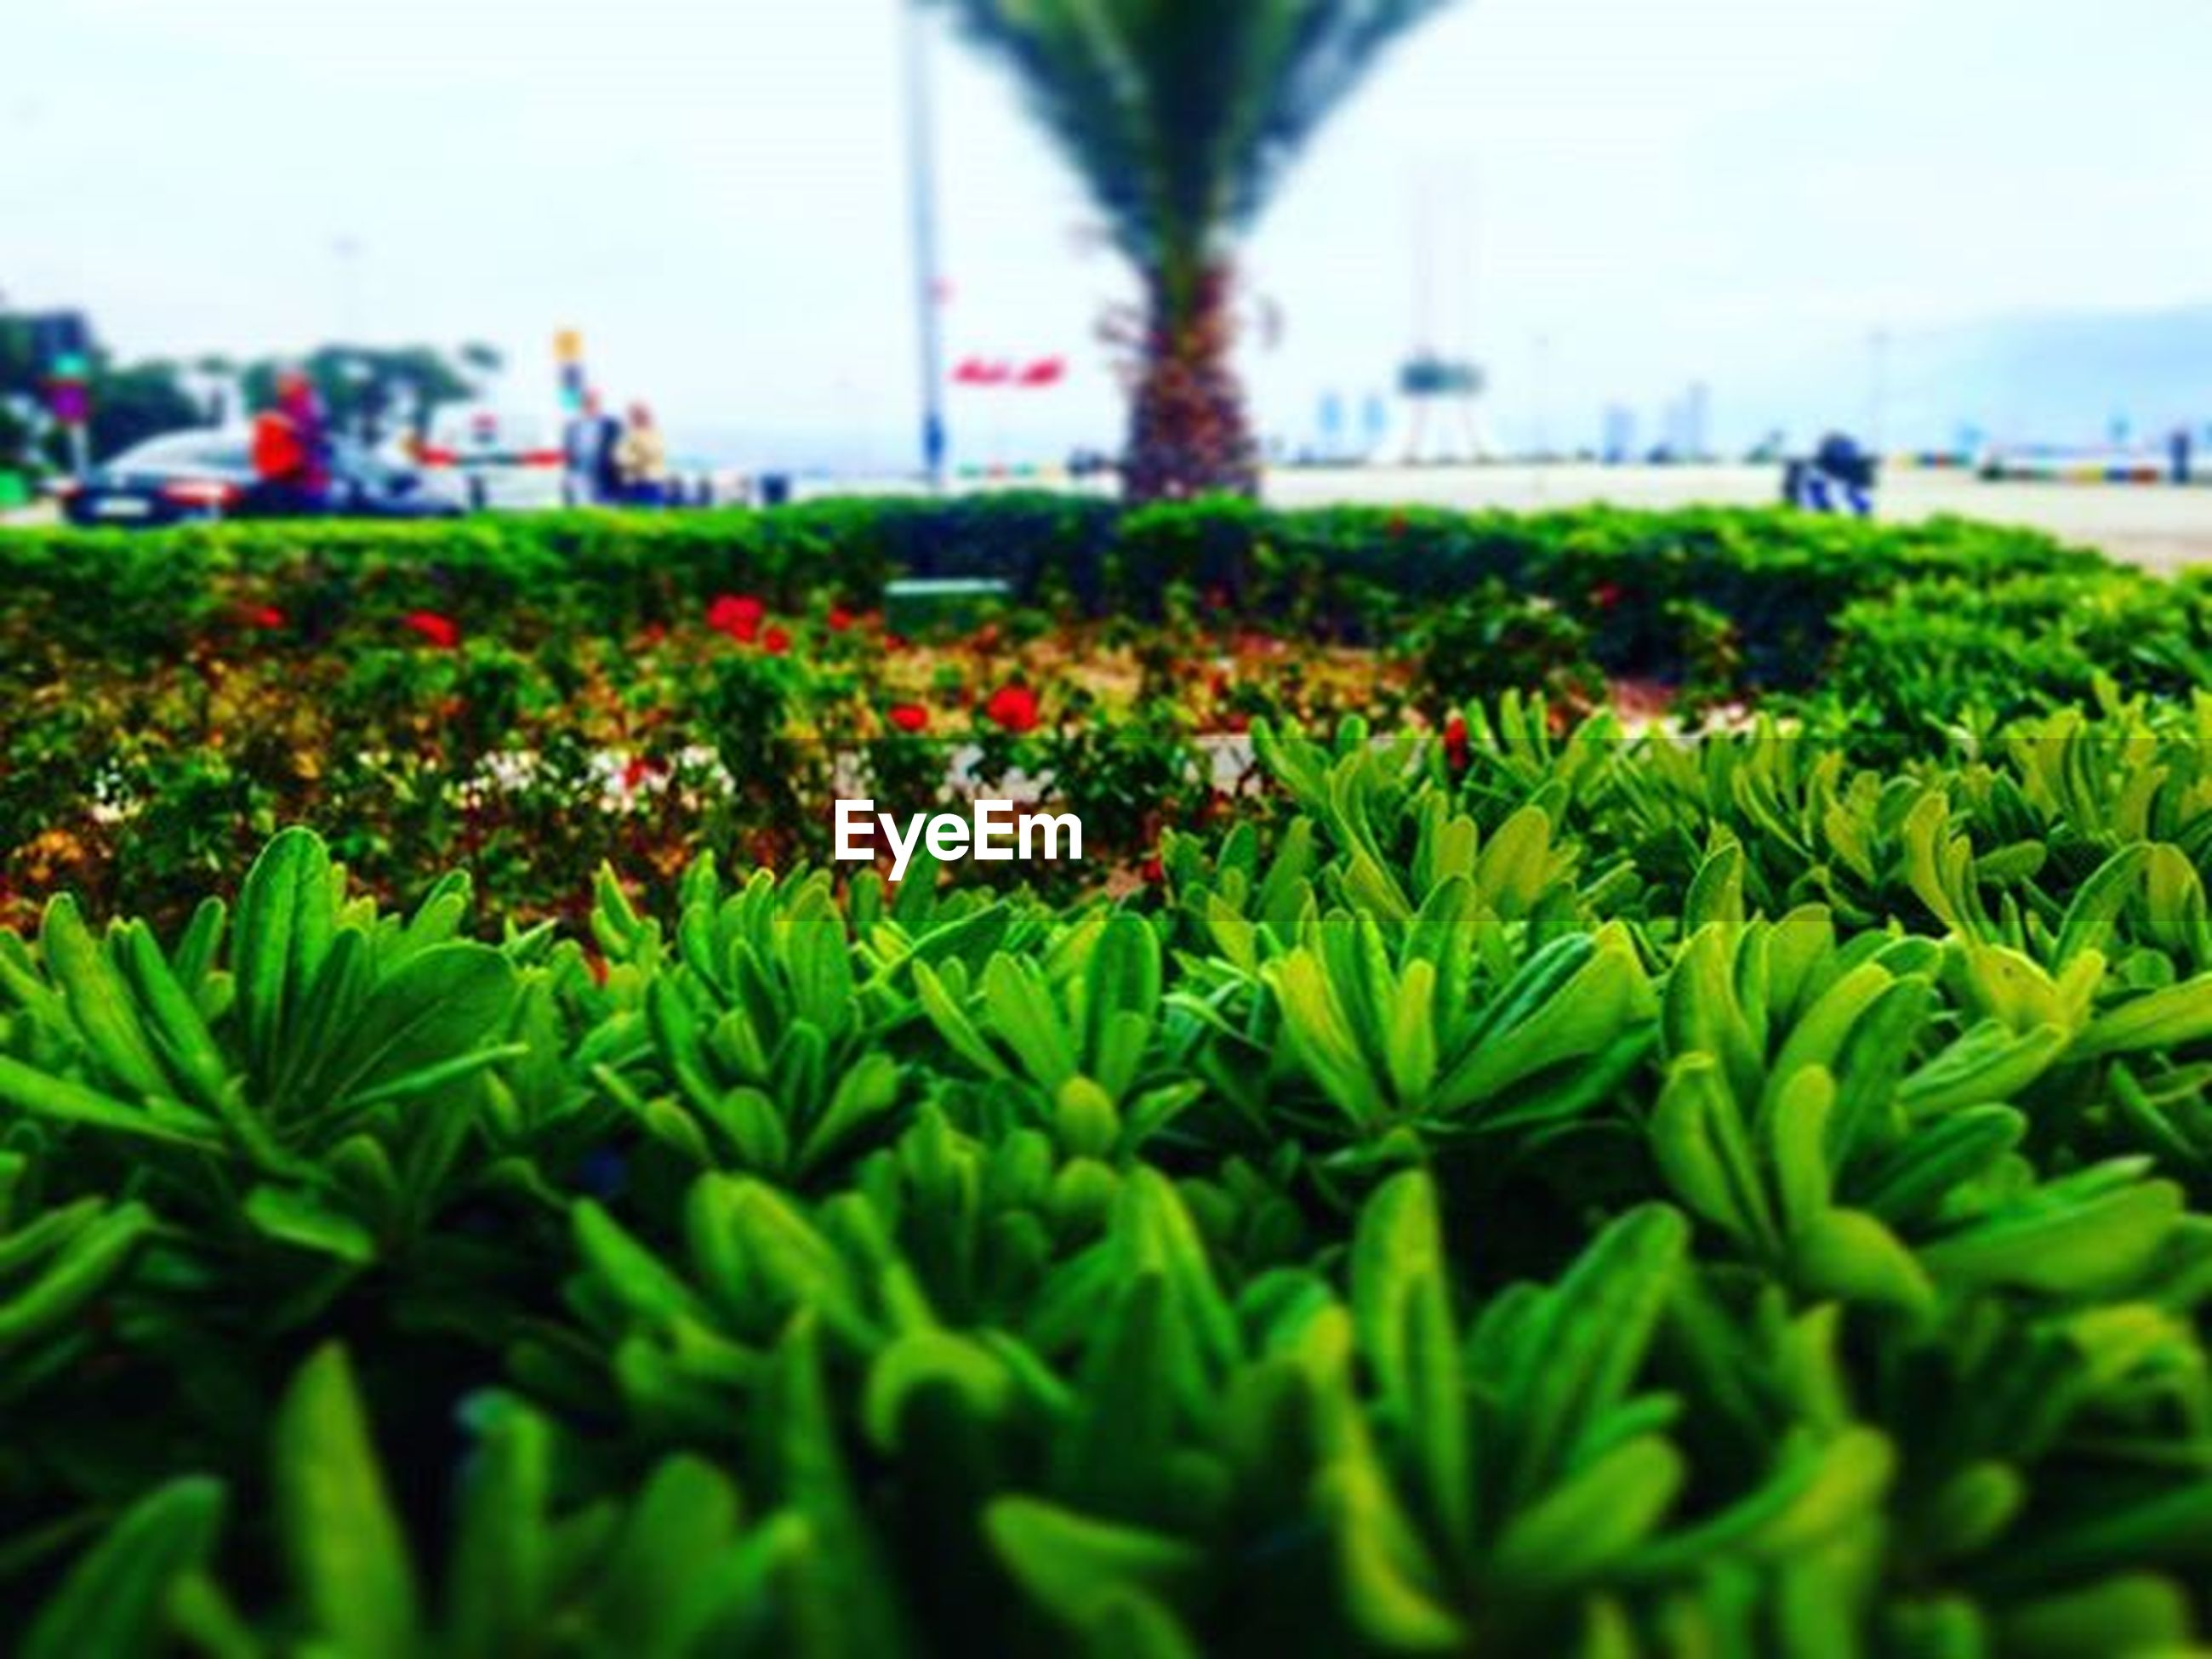 flower, growth, freshness, plant, fragility, beauty in nature, green color, nature, focus on foreground, leaf, selective focus, day, growing, field, outdoors, blooming, close-up, incidental people, park - man made space, in bloom